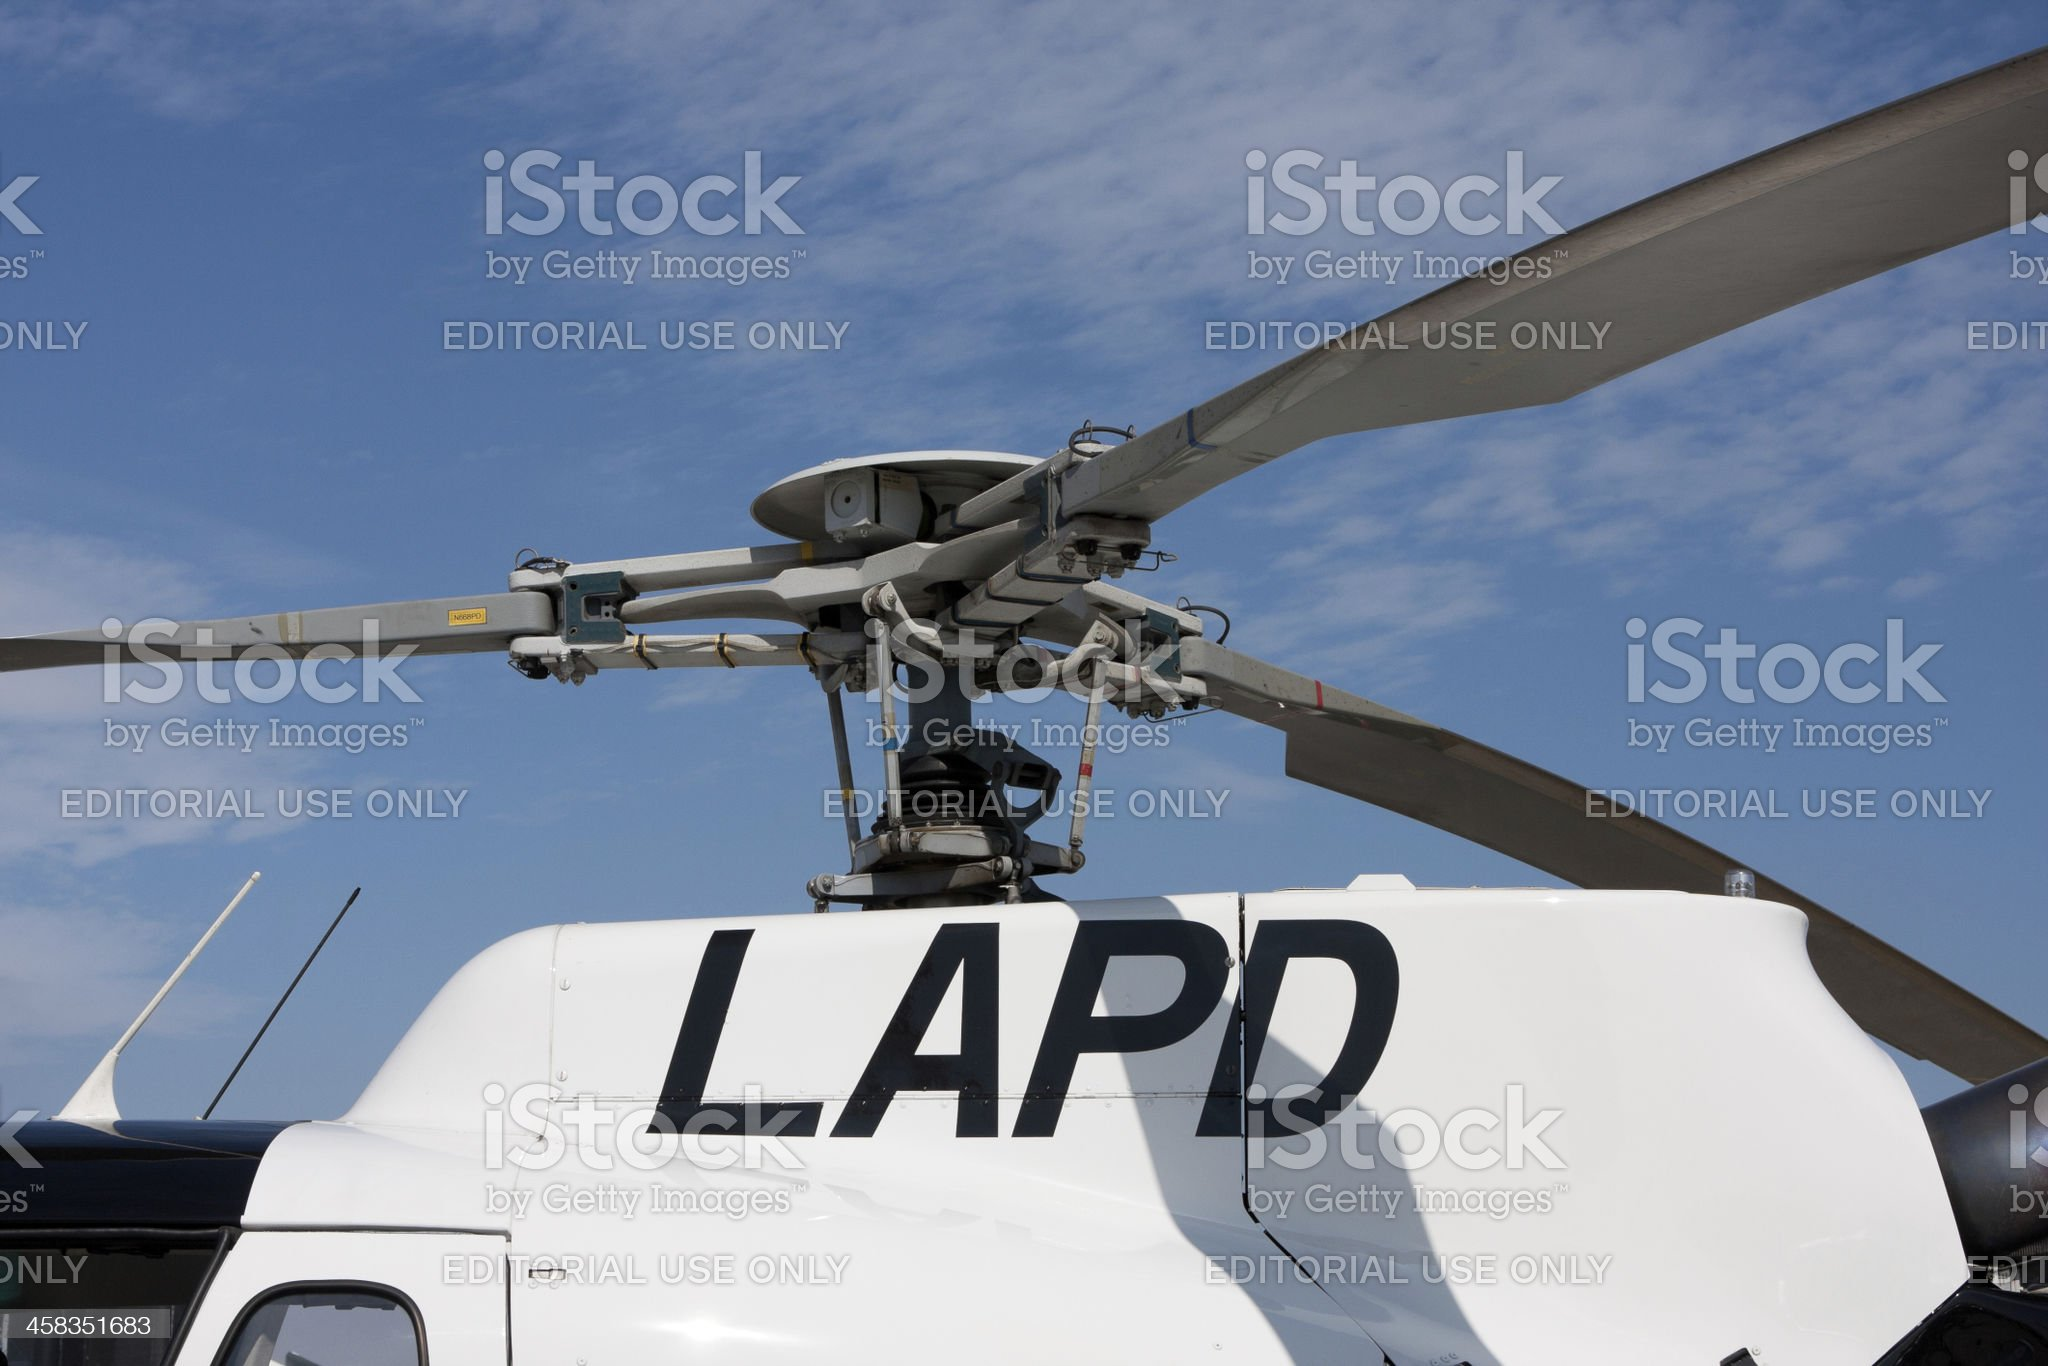 LAPD Helicopter royalty-free stock photo